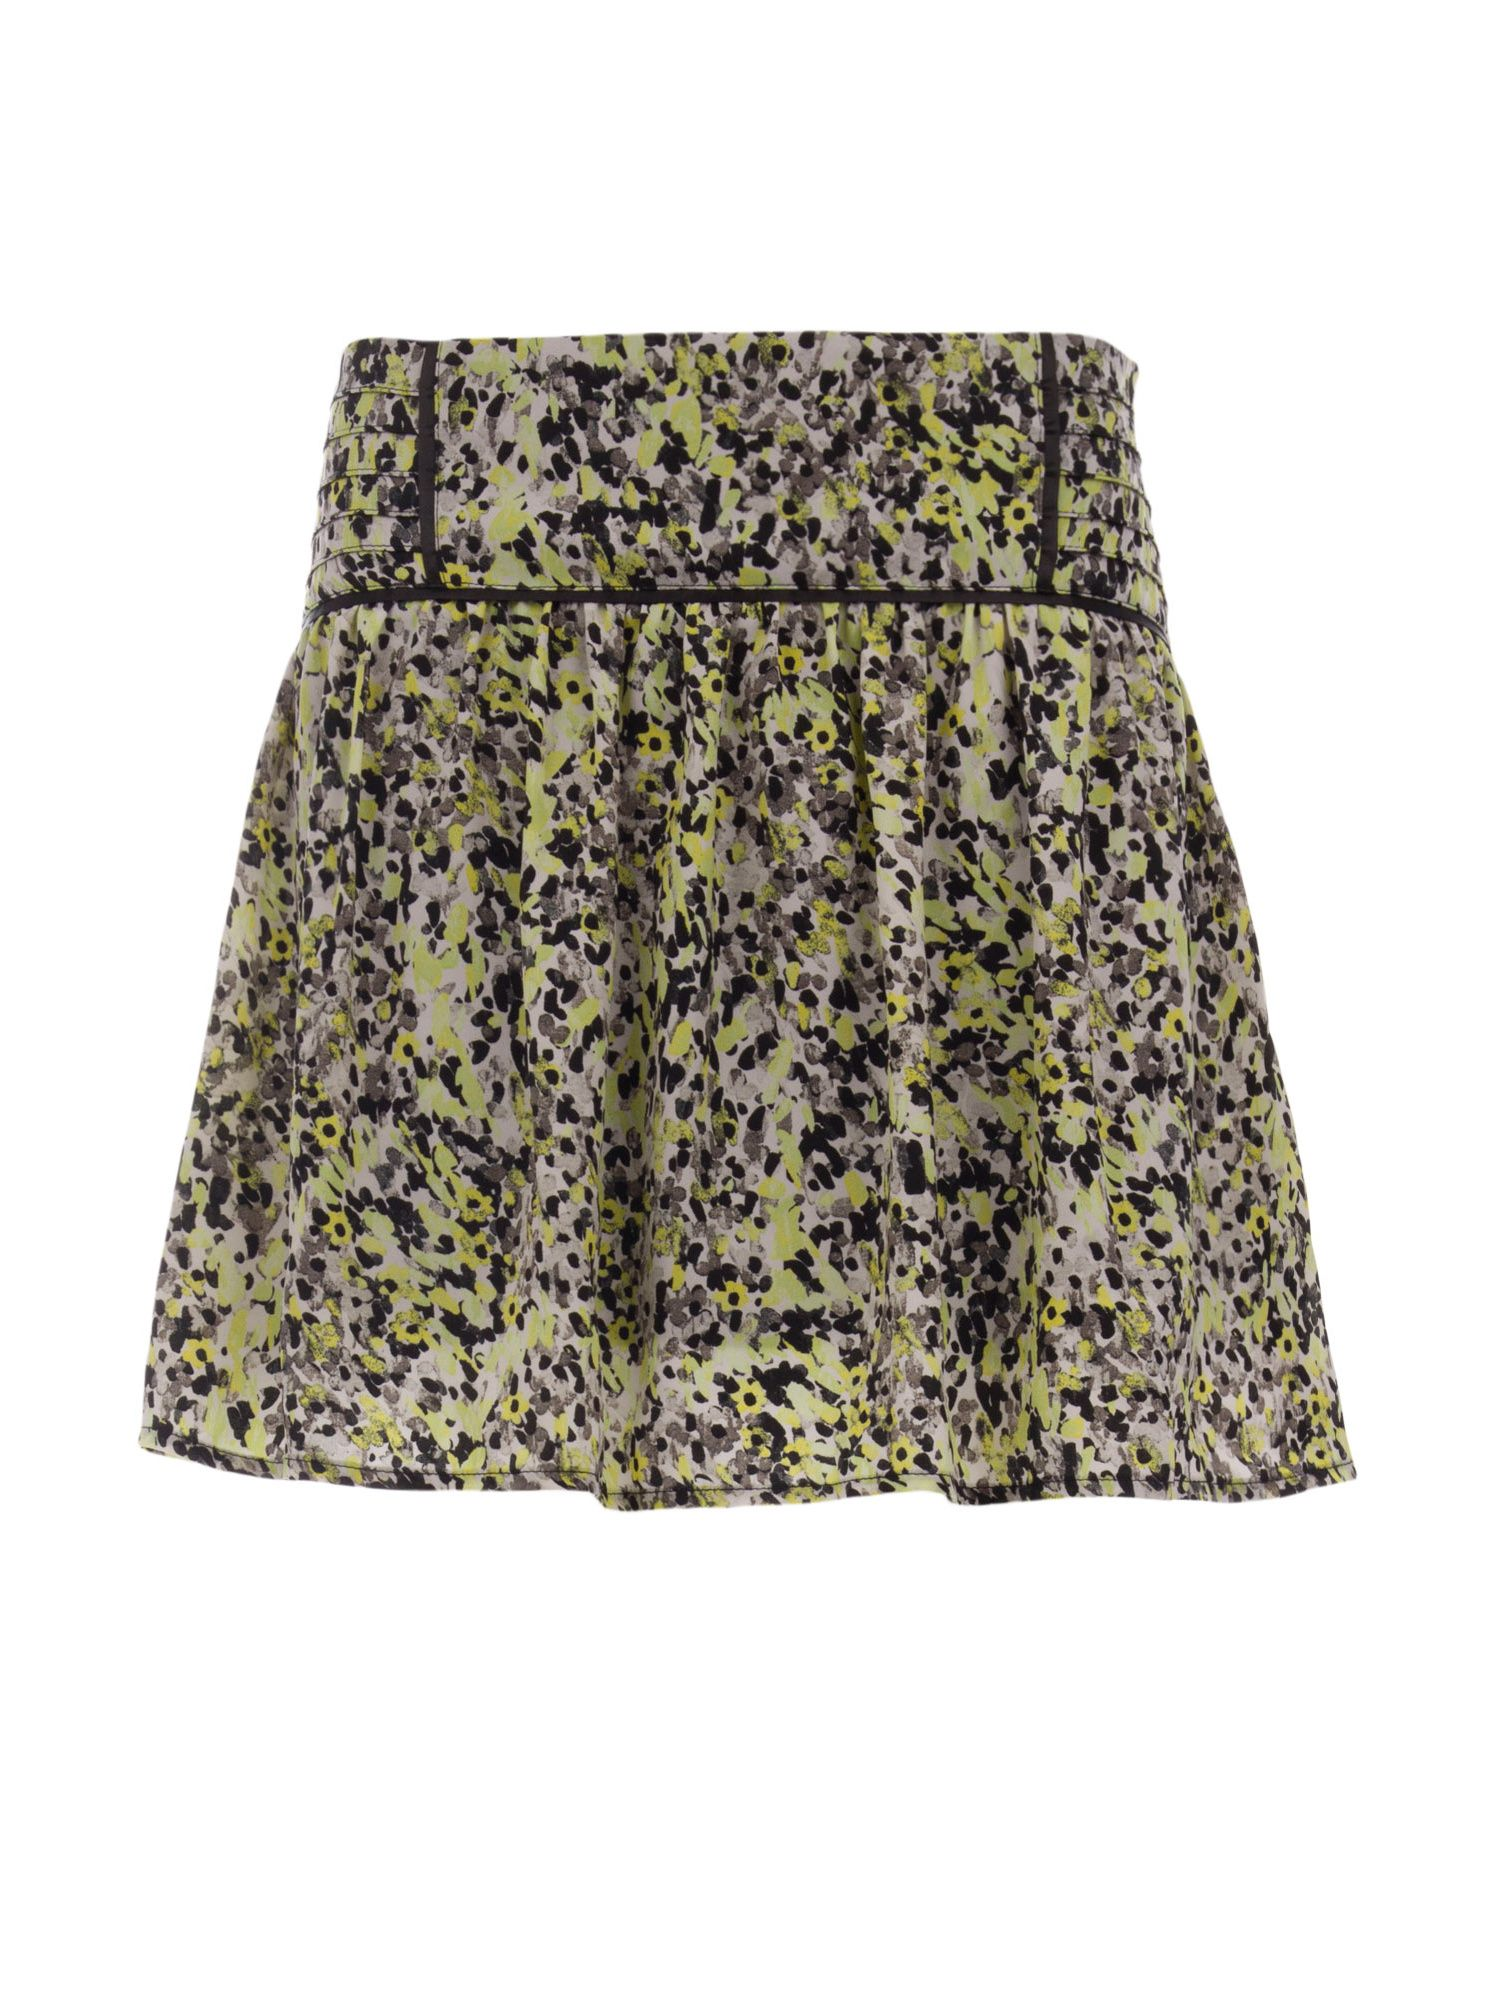 Morgan Patterned Flared Skirt, Yellow